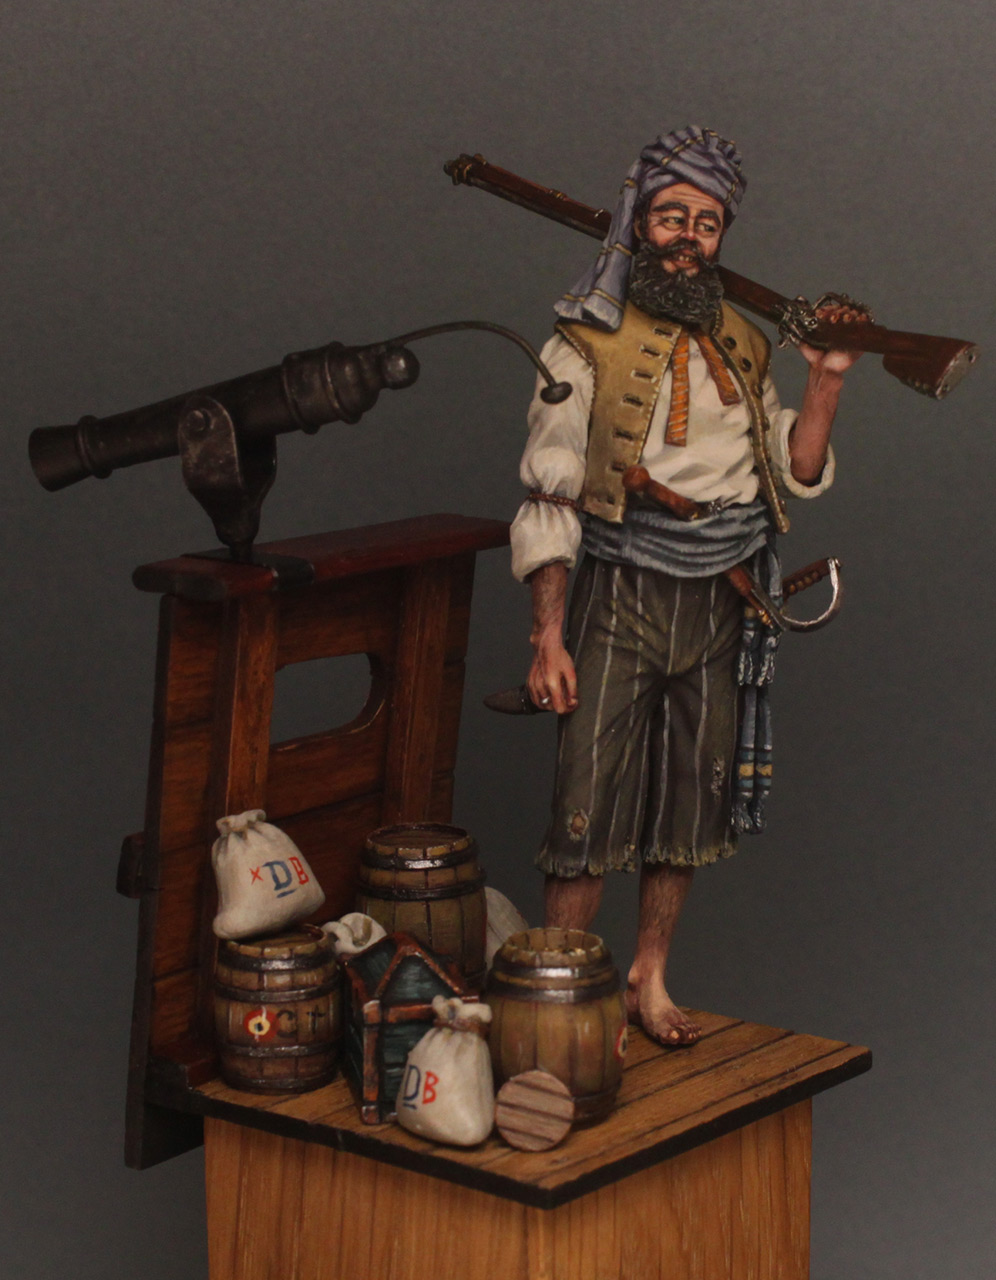 Dioramas and Vignettes: Good catch, photo #3